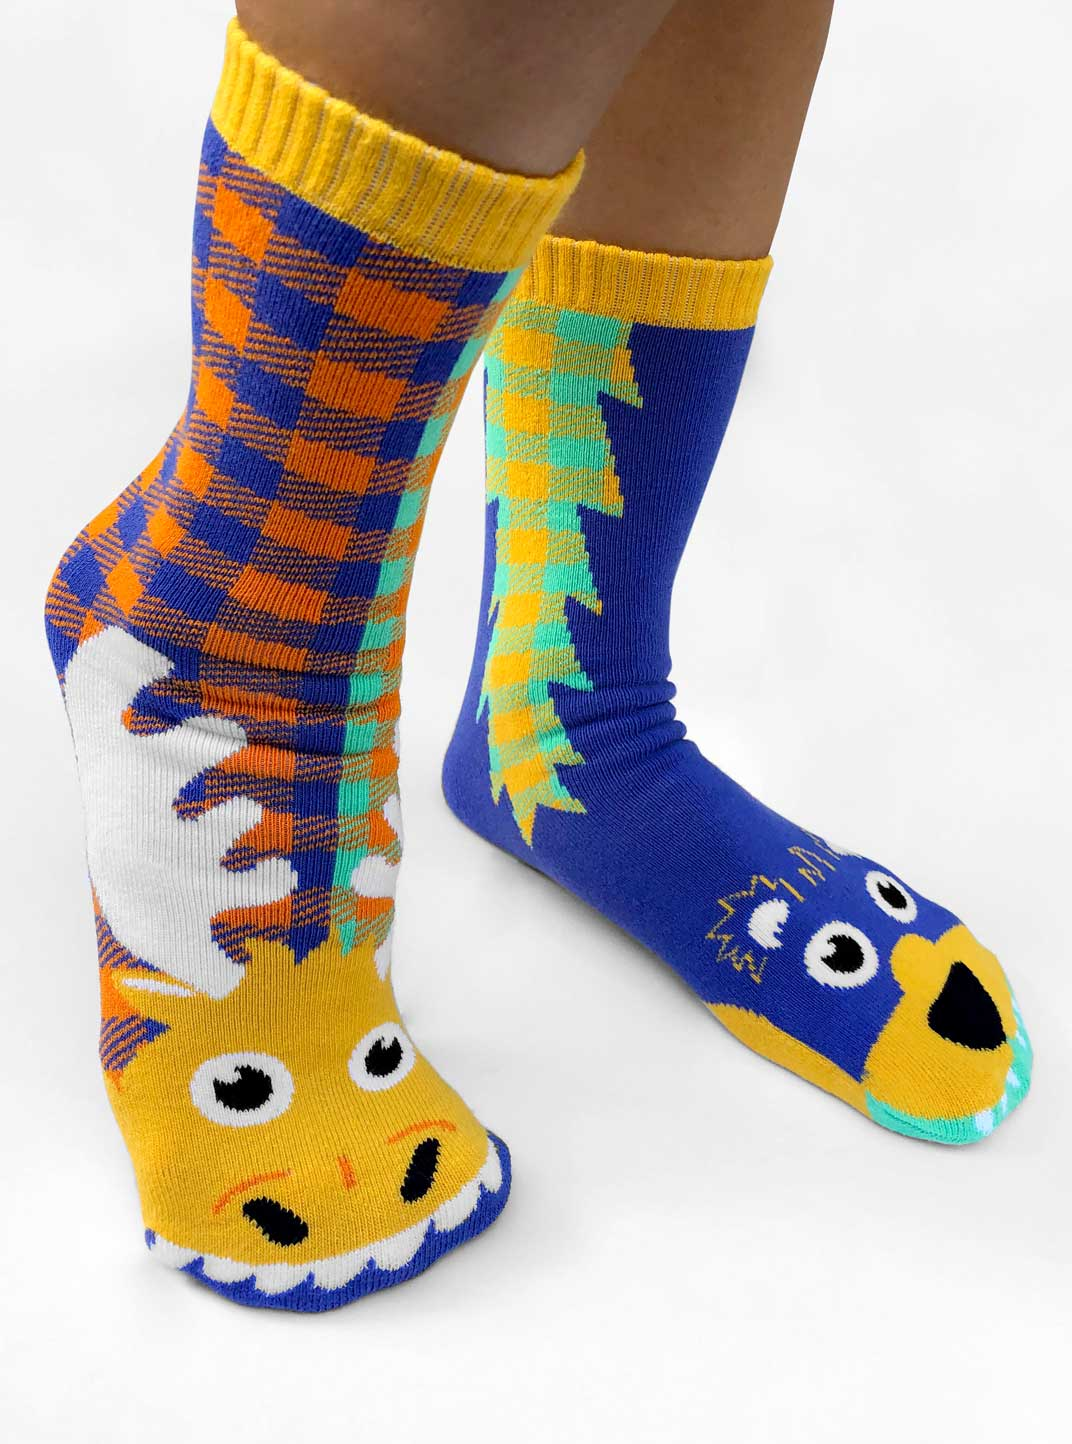 Moose & Bear | Adult Socks | Mismatched Fun Socks